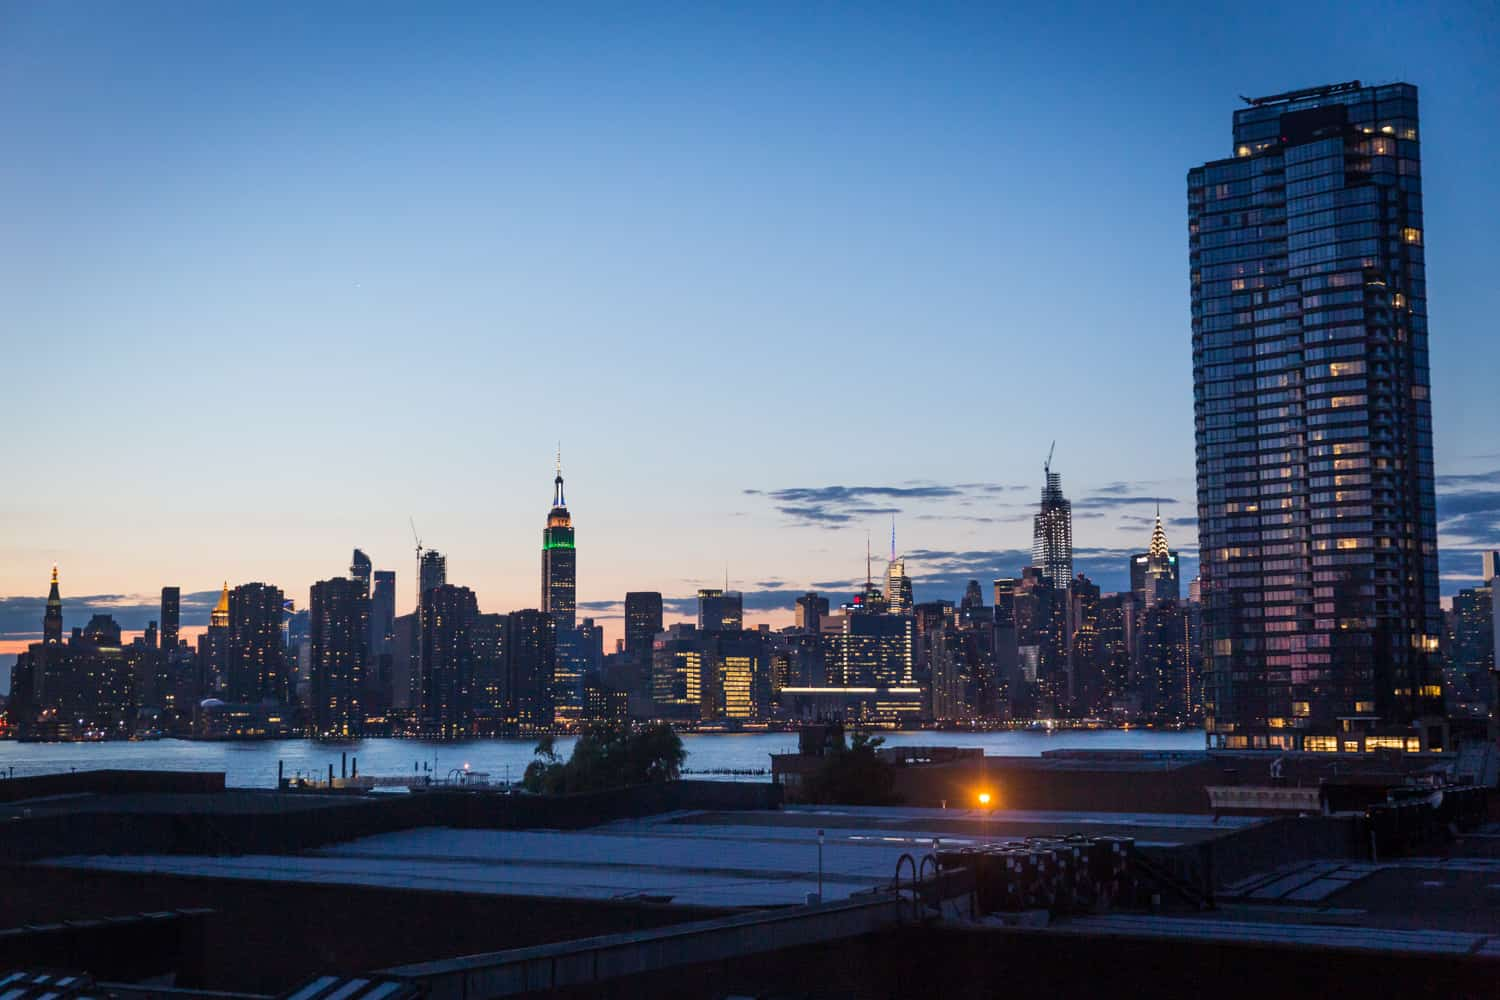 View of NYC skyline at dusk